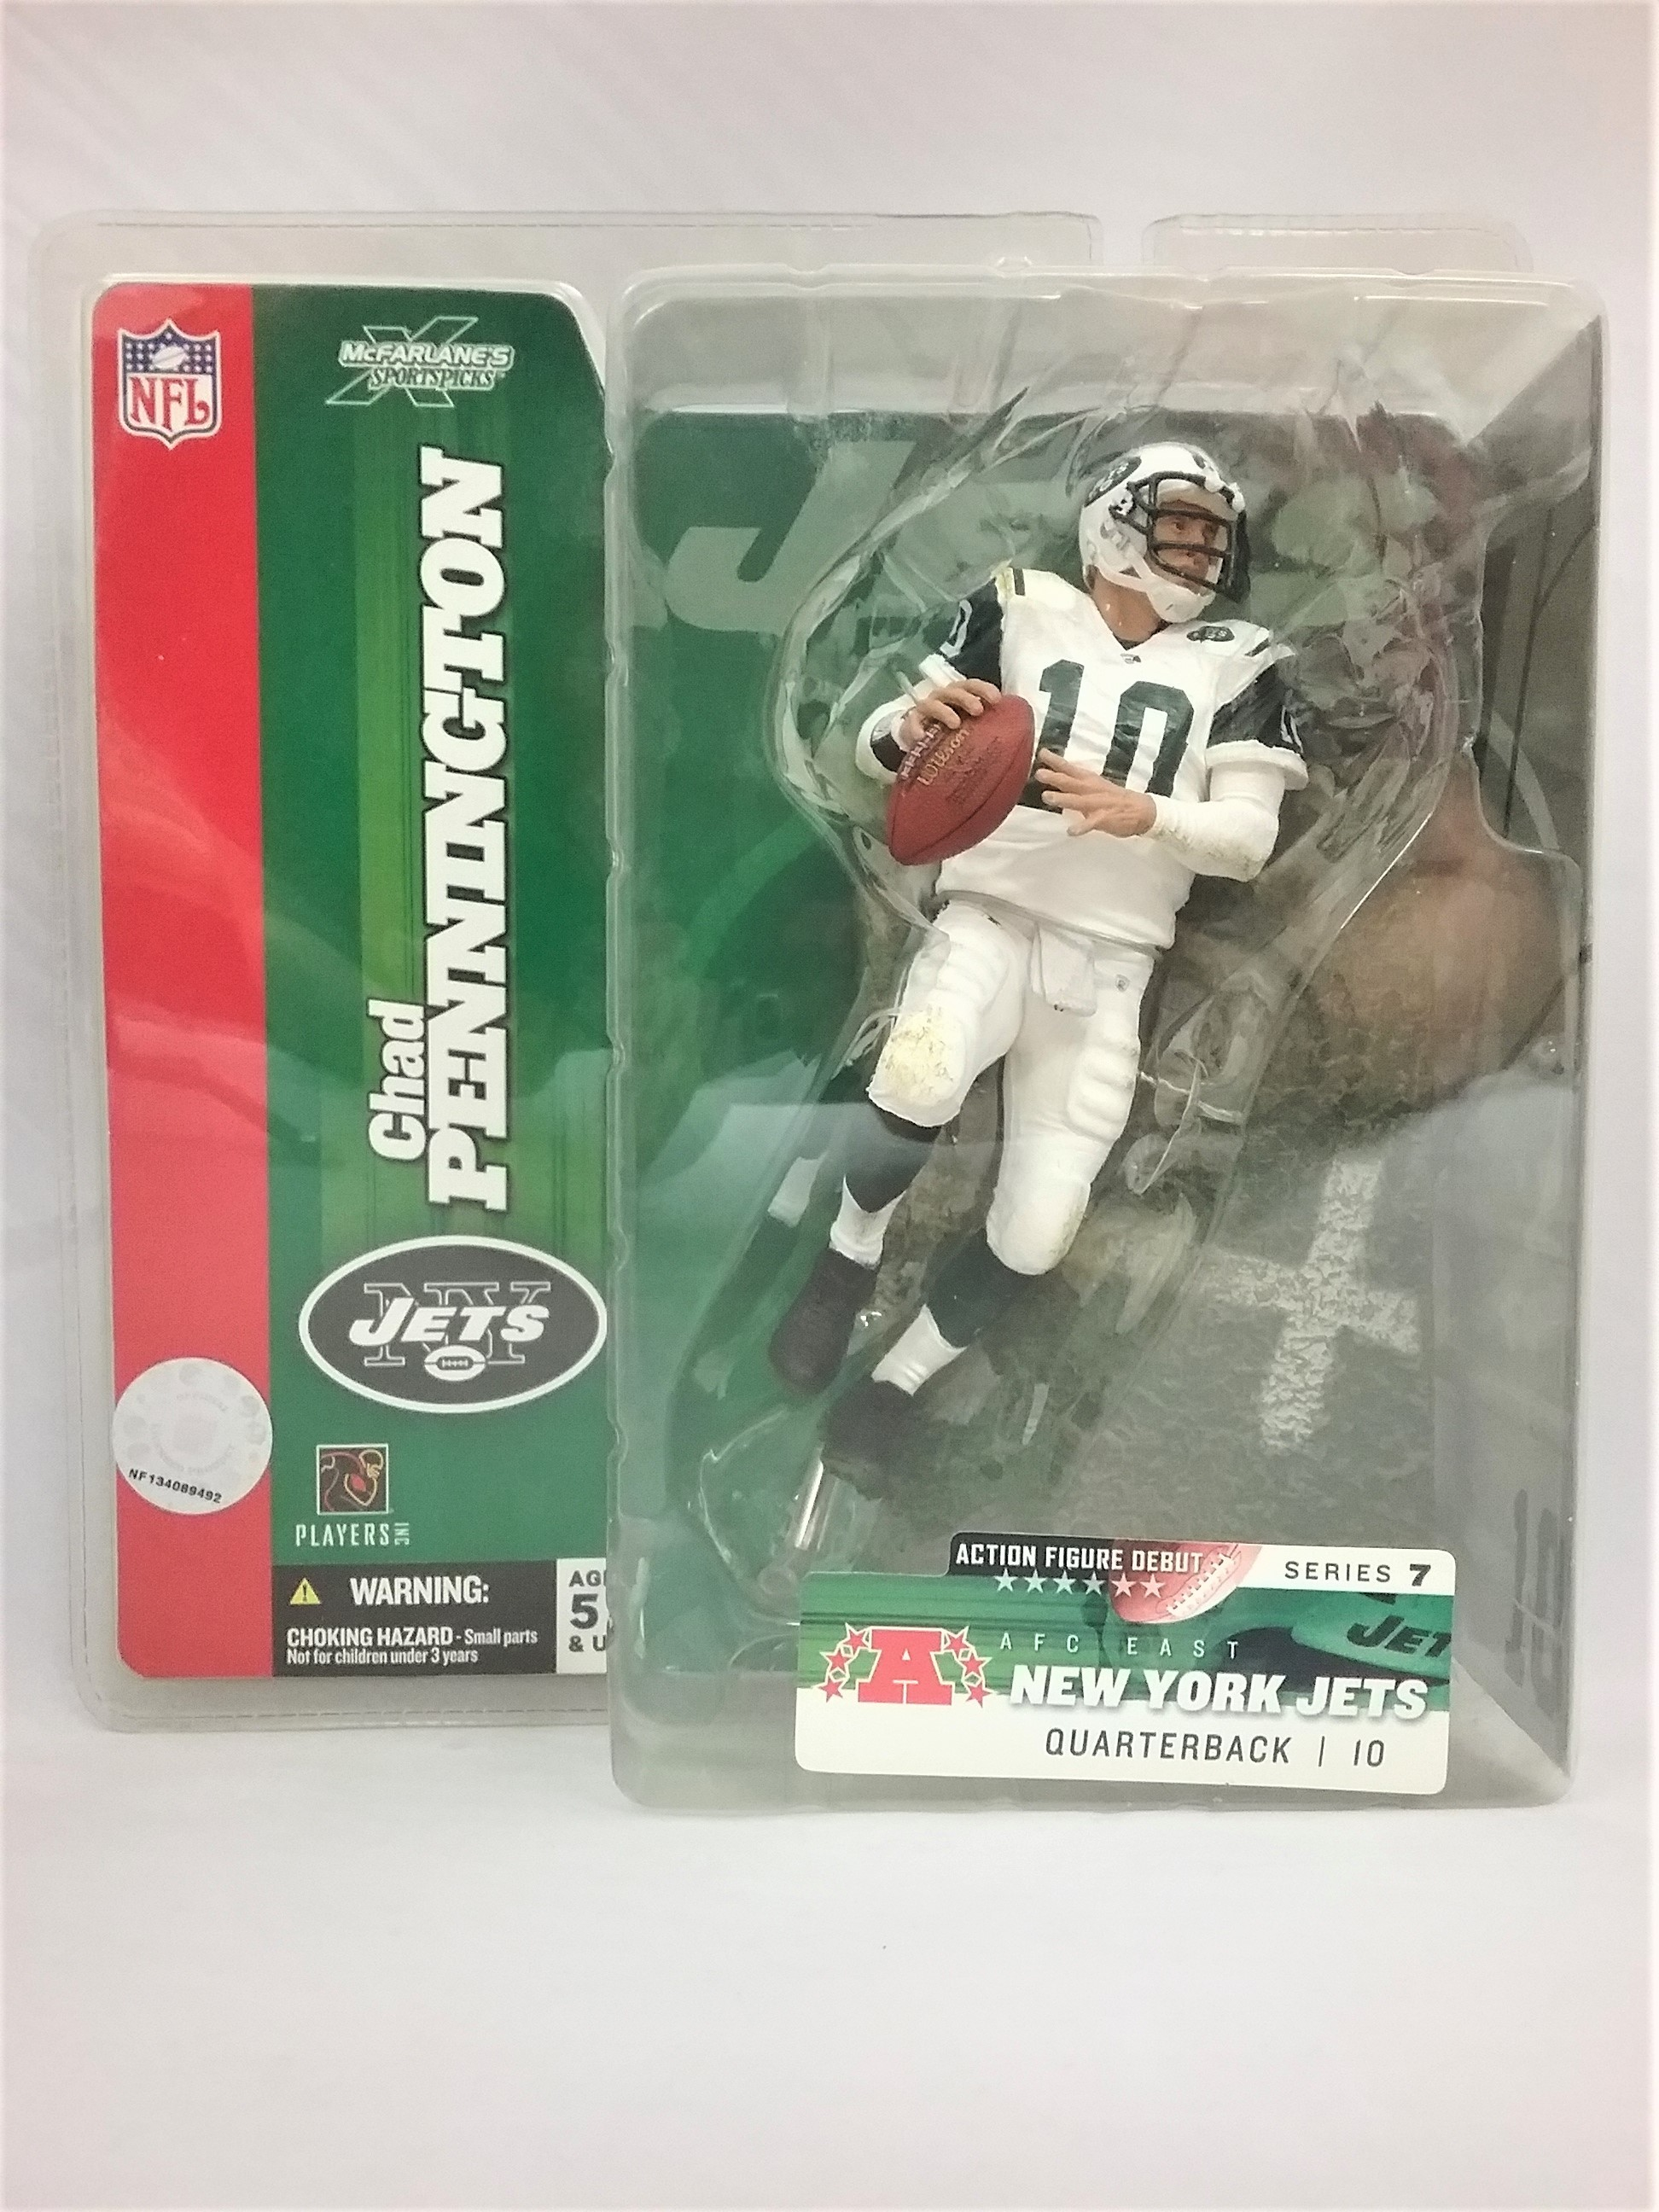 Chad Pennington New York Jets McFarlane's Toys Series 7